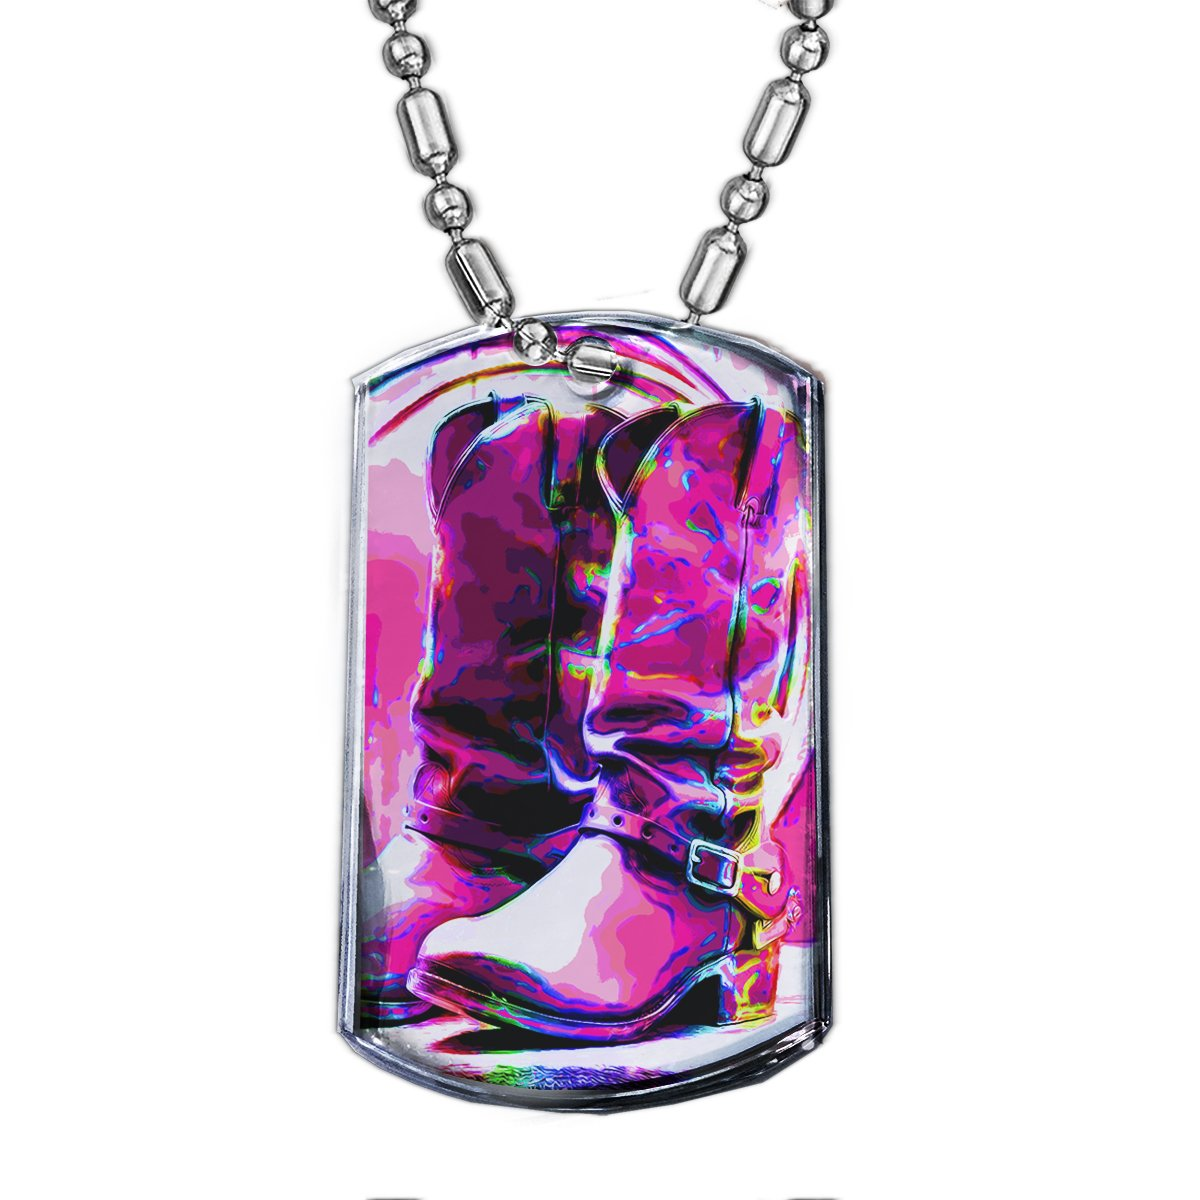 Cowboy Boots_1 - Premium Chrome Dog Tag Pendant Bead Chain Necklace